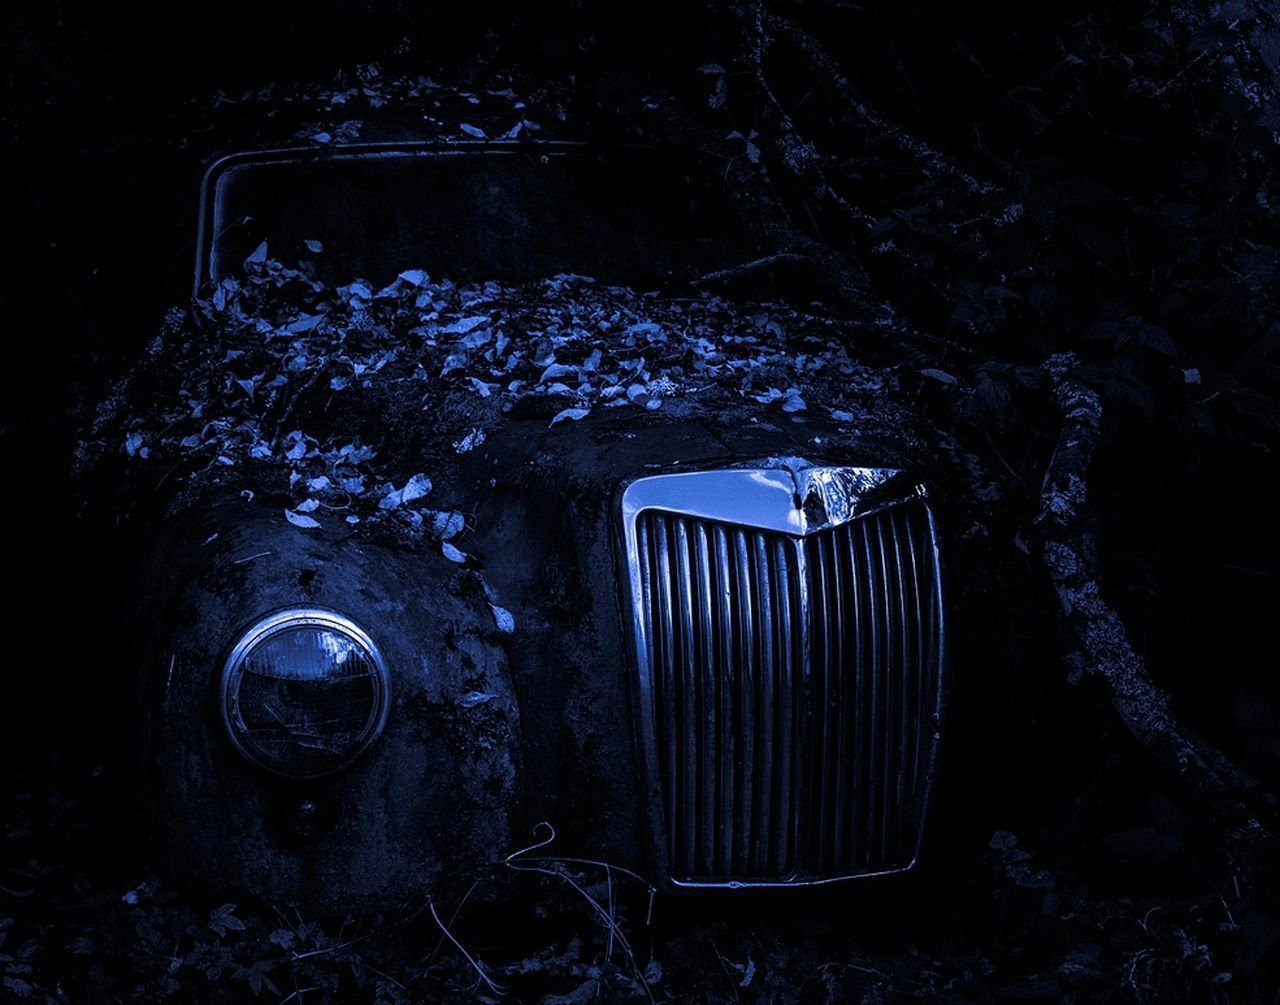 Old Car Outdoors Veteran Night No People Wreck Cold Temperature Fall Car First Eyeem Photo Transportation The End Of The Road  Nature Rusty Autos Beauty In Nature Wreck